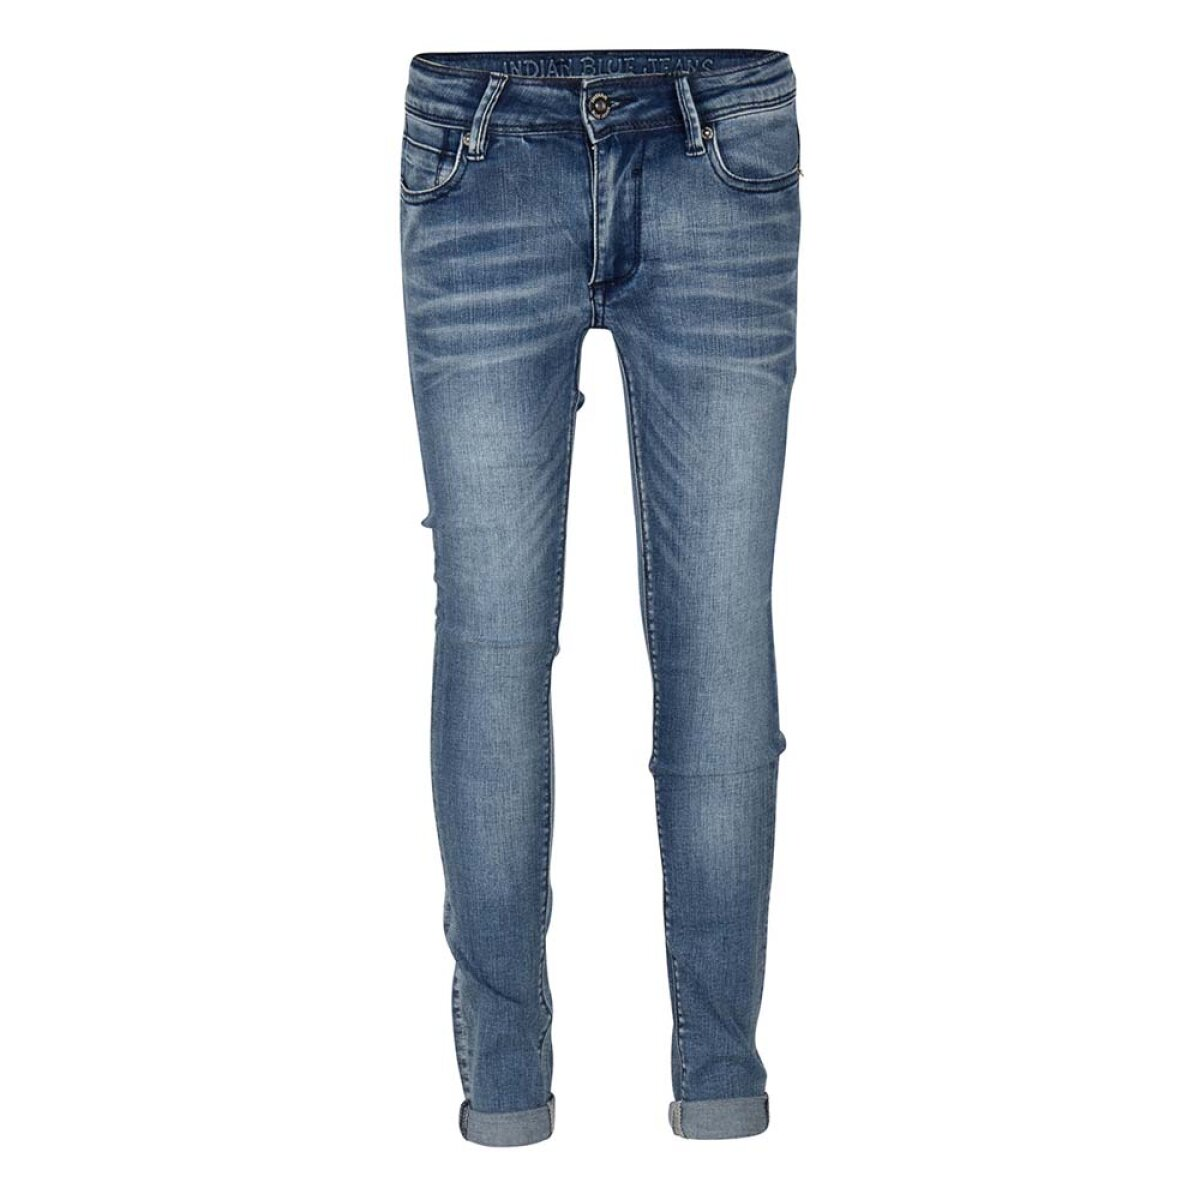 Indian Blue Jeans jongens jeans IBB21-2802 blauw